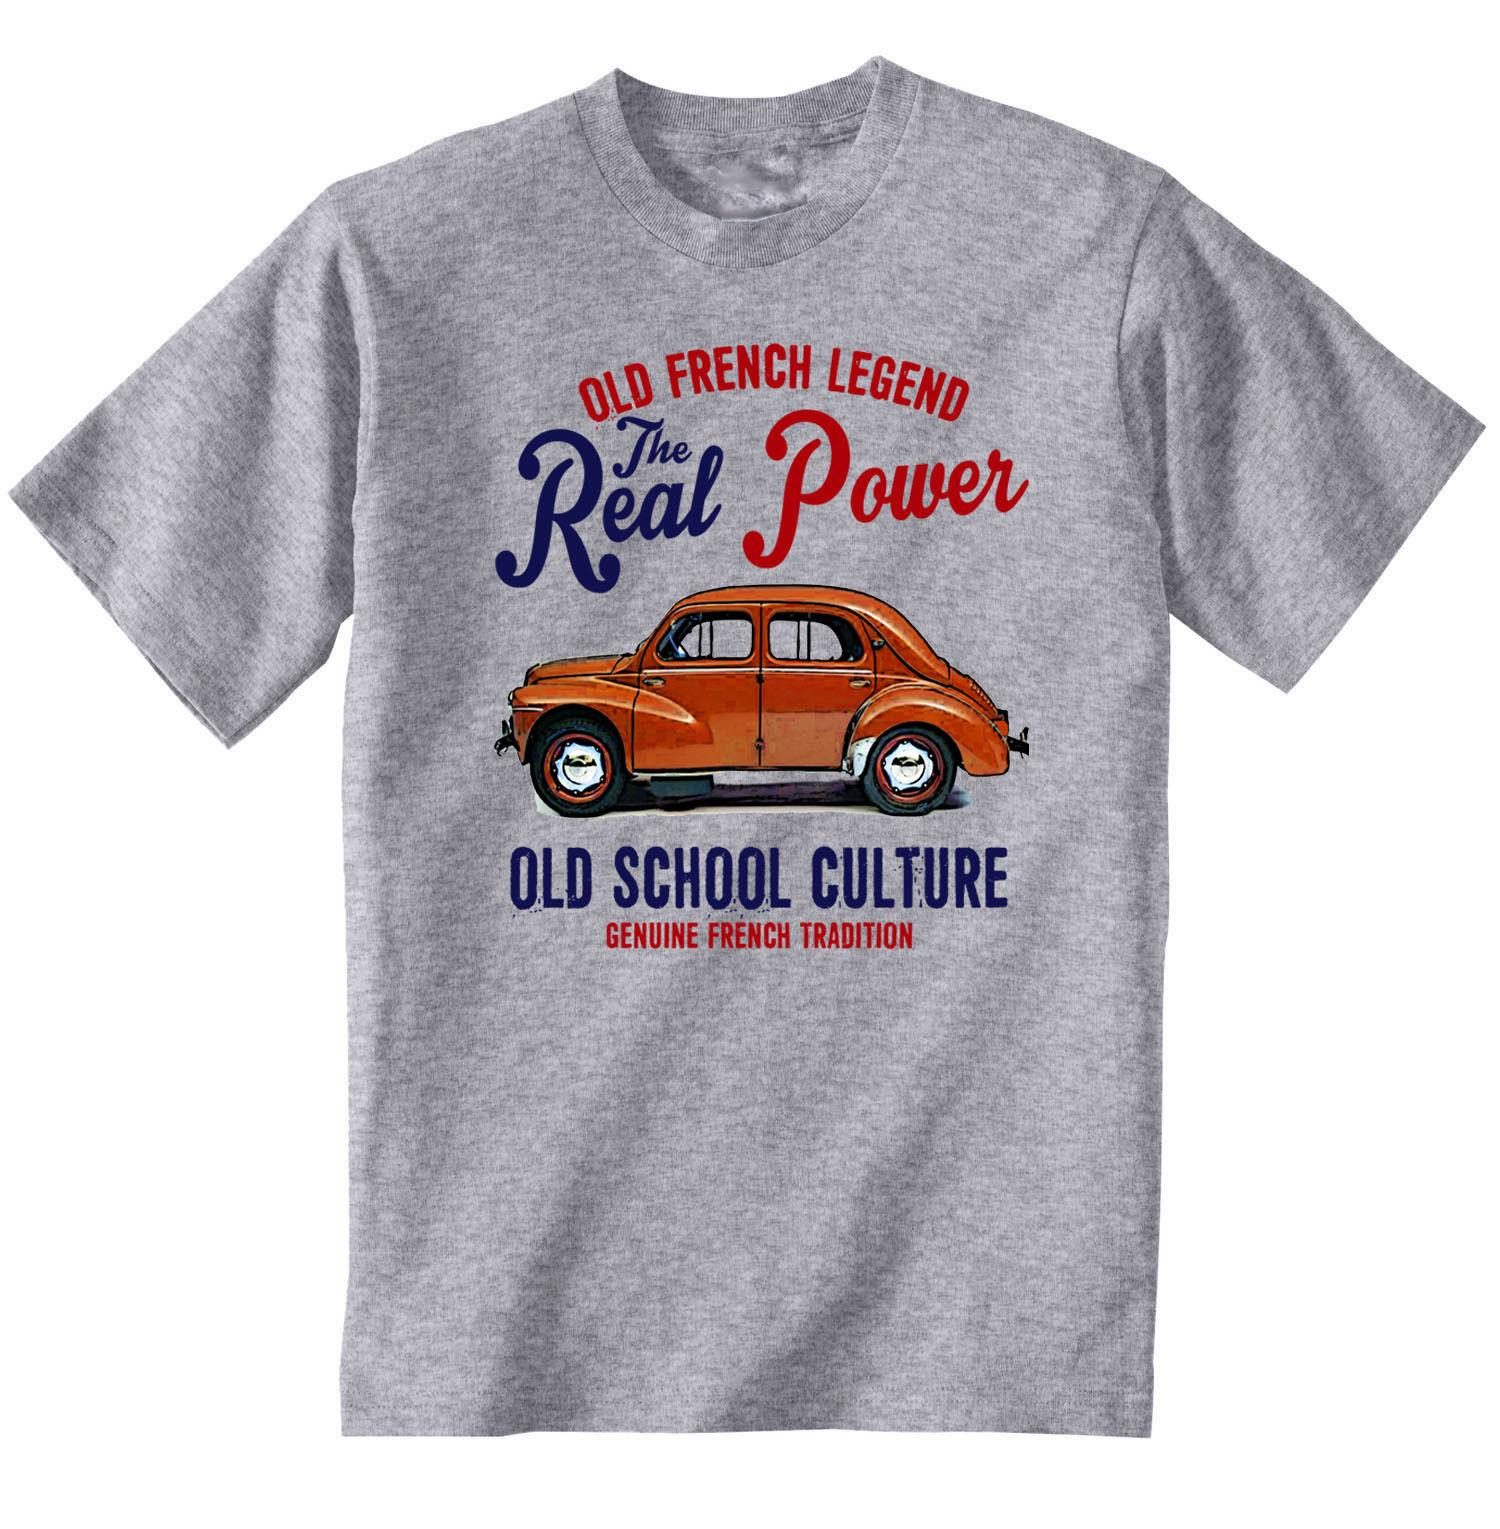 VINTAGE FRENCH CAR RENAULT 4CV - NEW COTTON T-SHIRTStyle Round Style tshirt